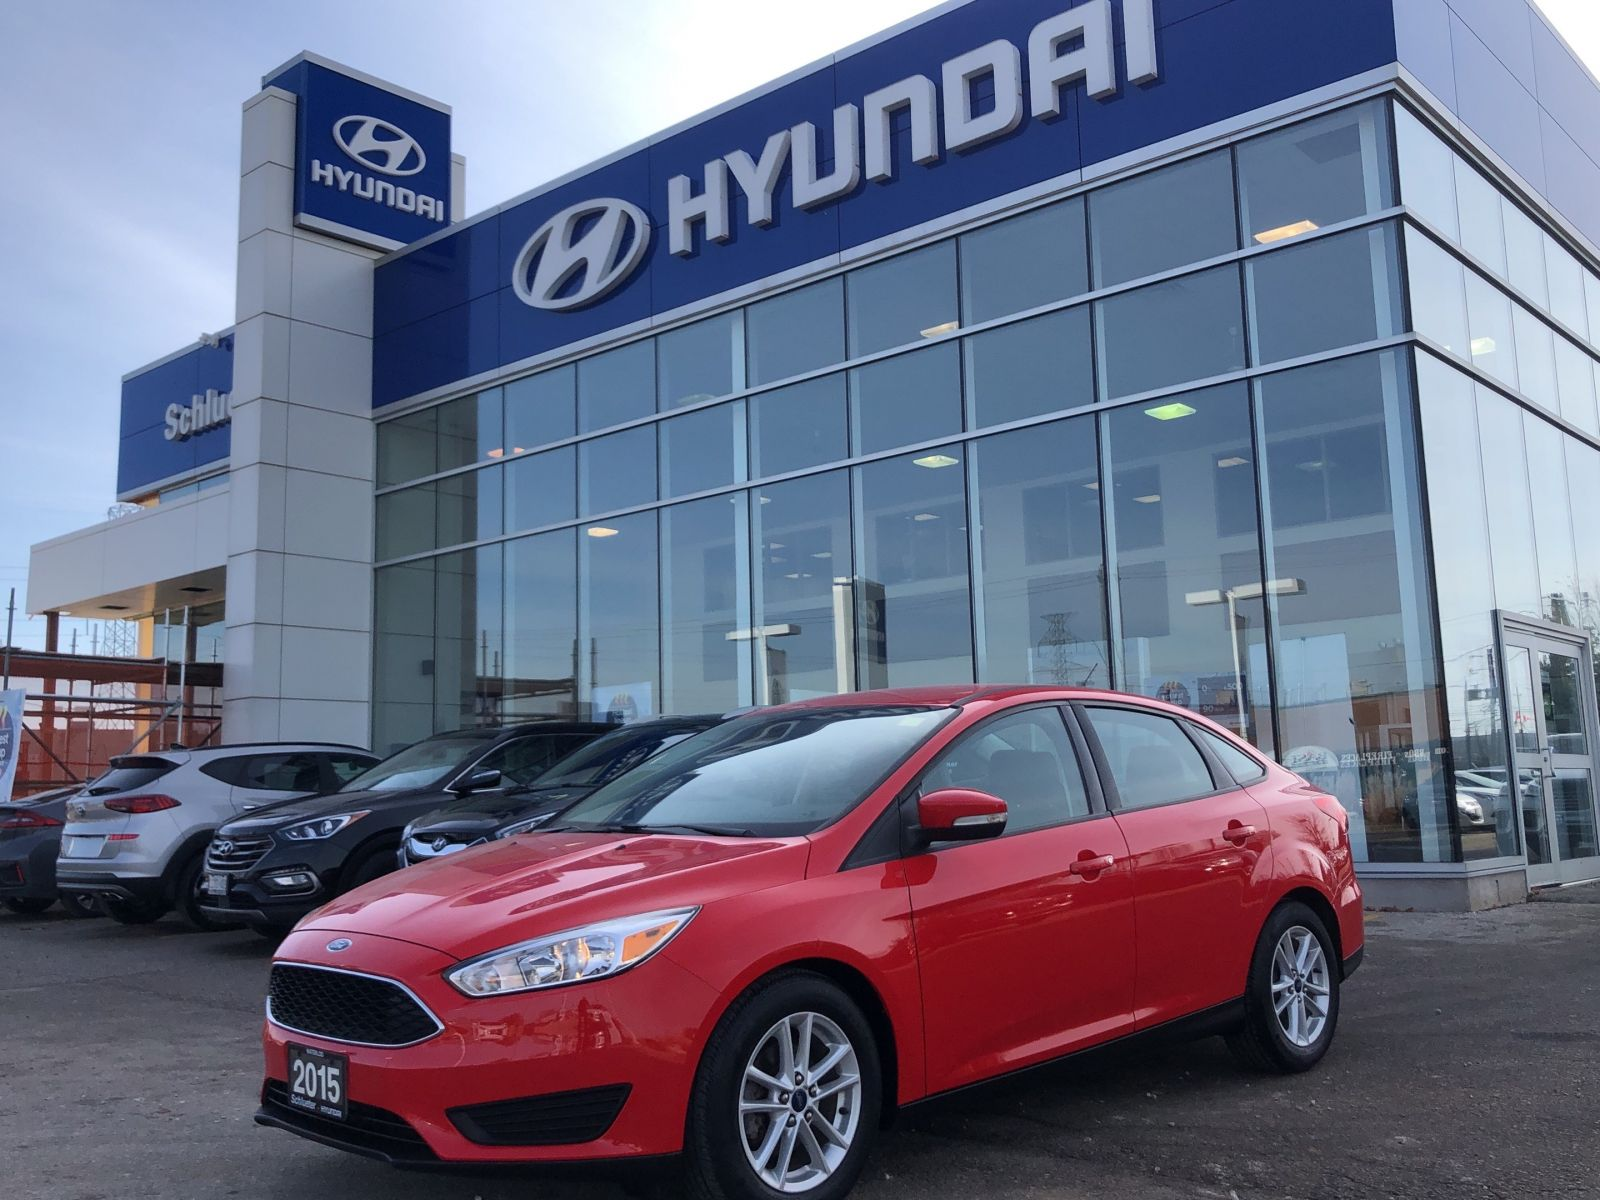 2015 Ford Focus Image